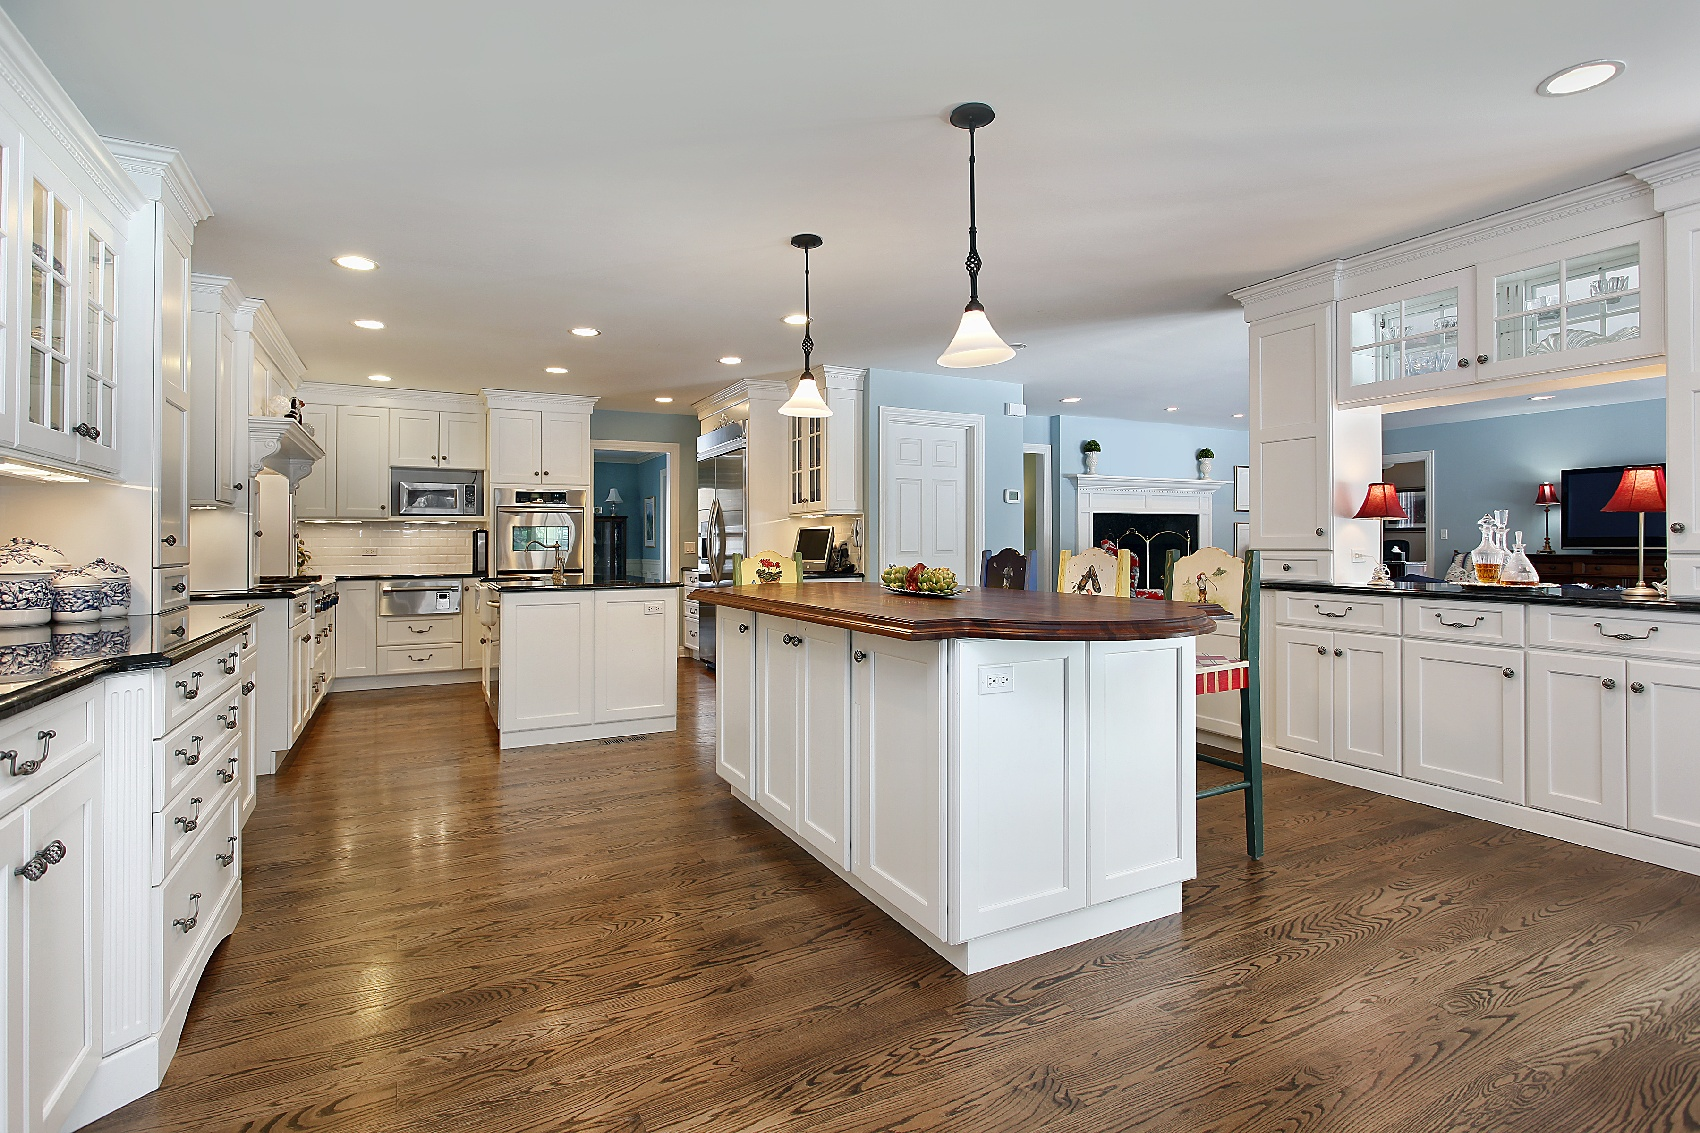 Kitchen Island Costs: Everything You Need to Consider